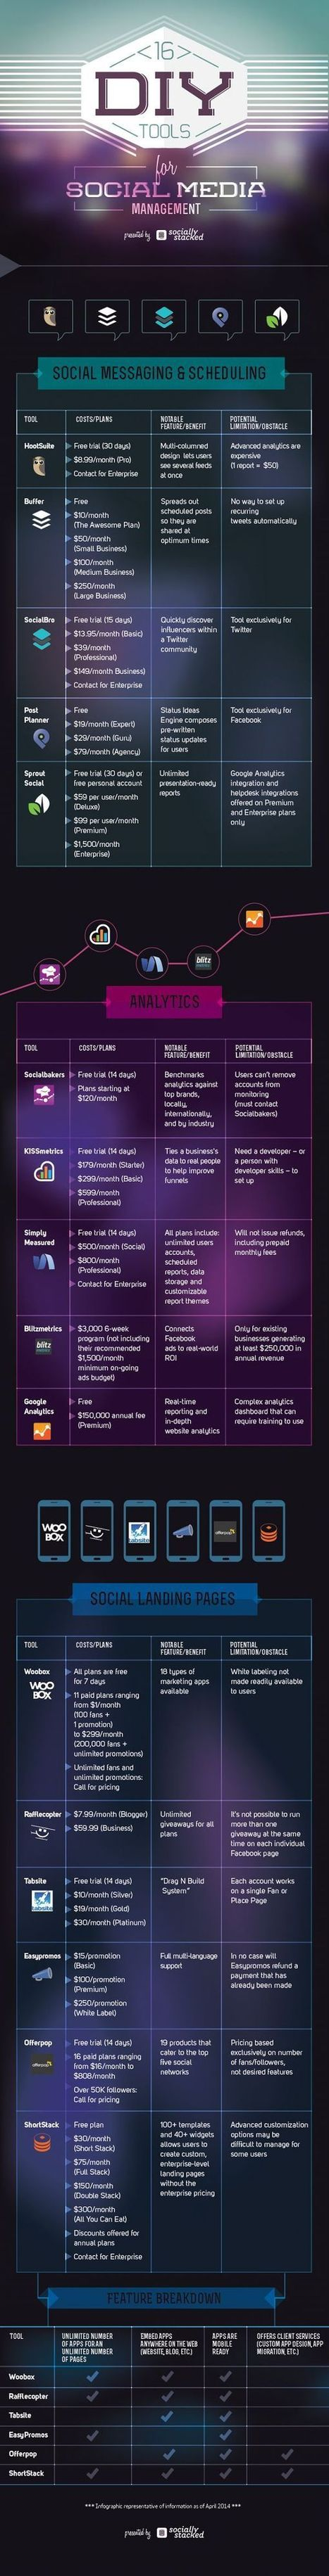 16 Tools for Social Media Management {Infographic} - Best Infographics | SoMe viestintä | Scoop.it